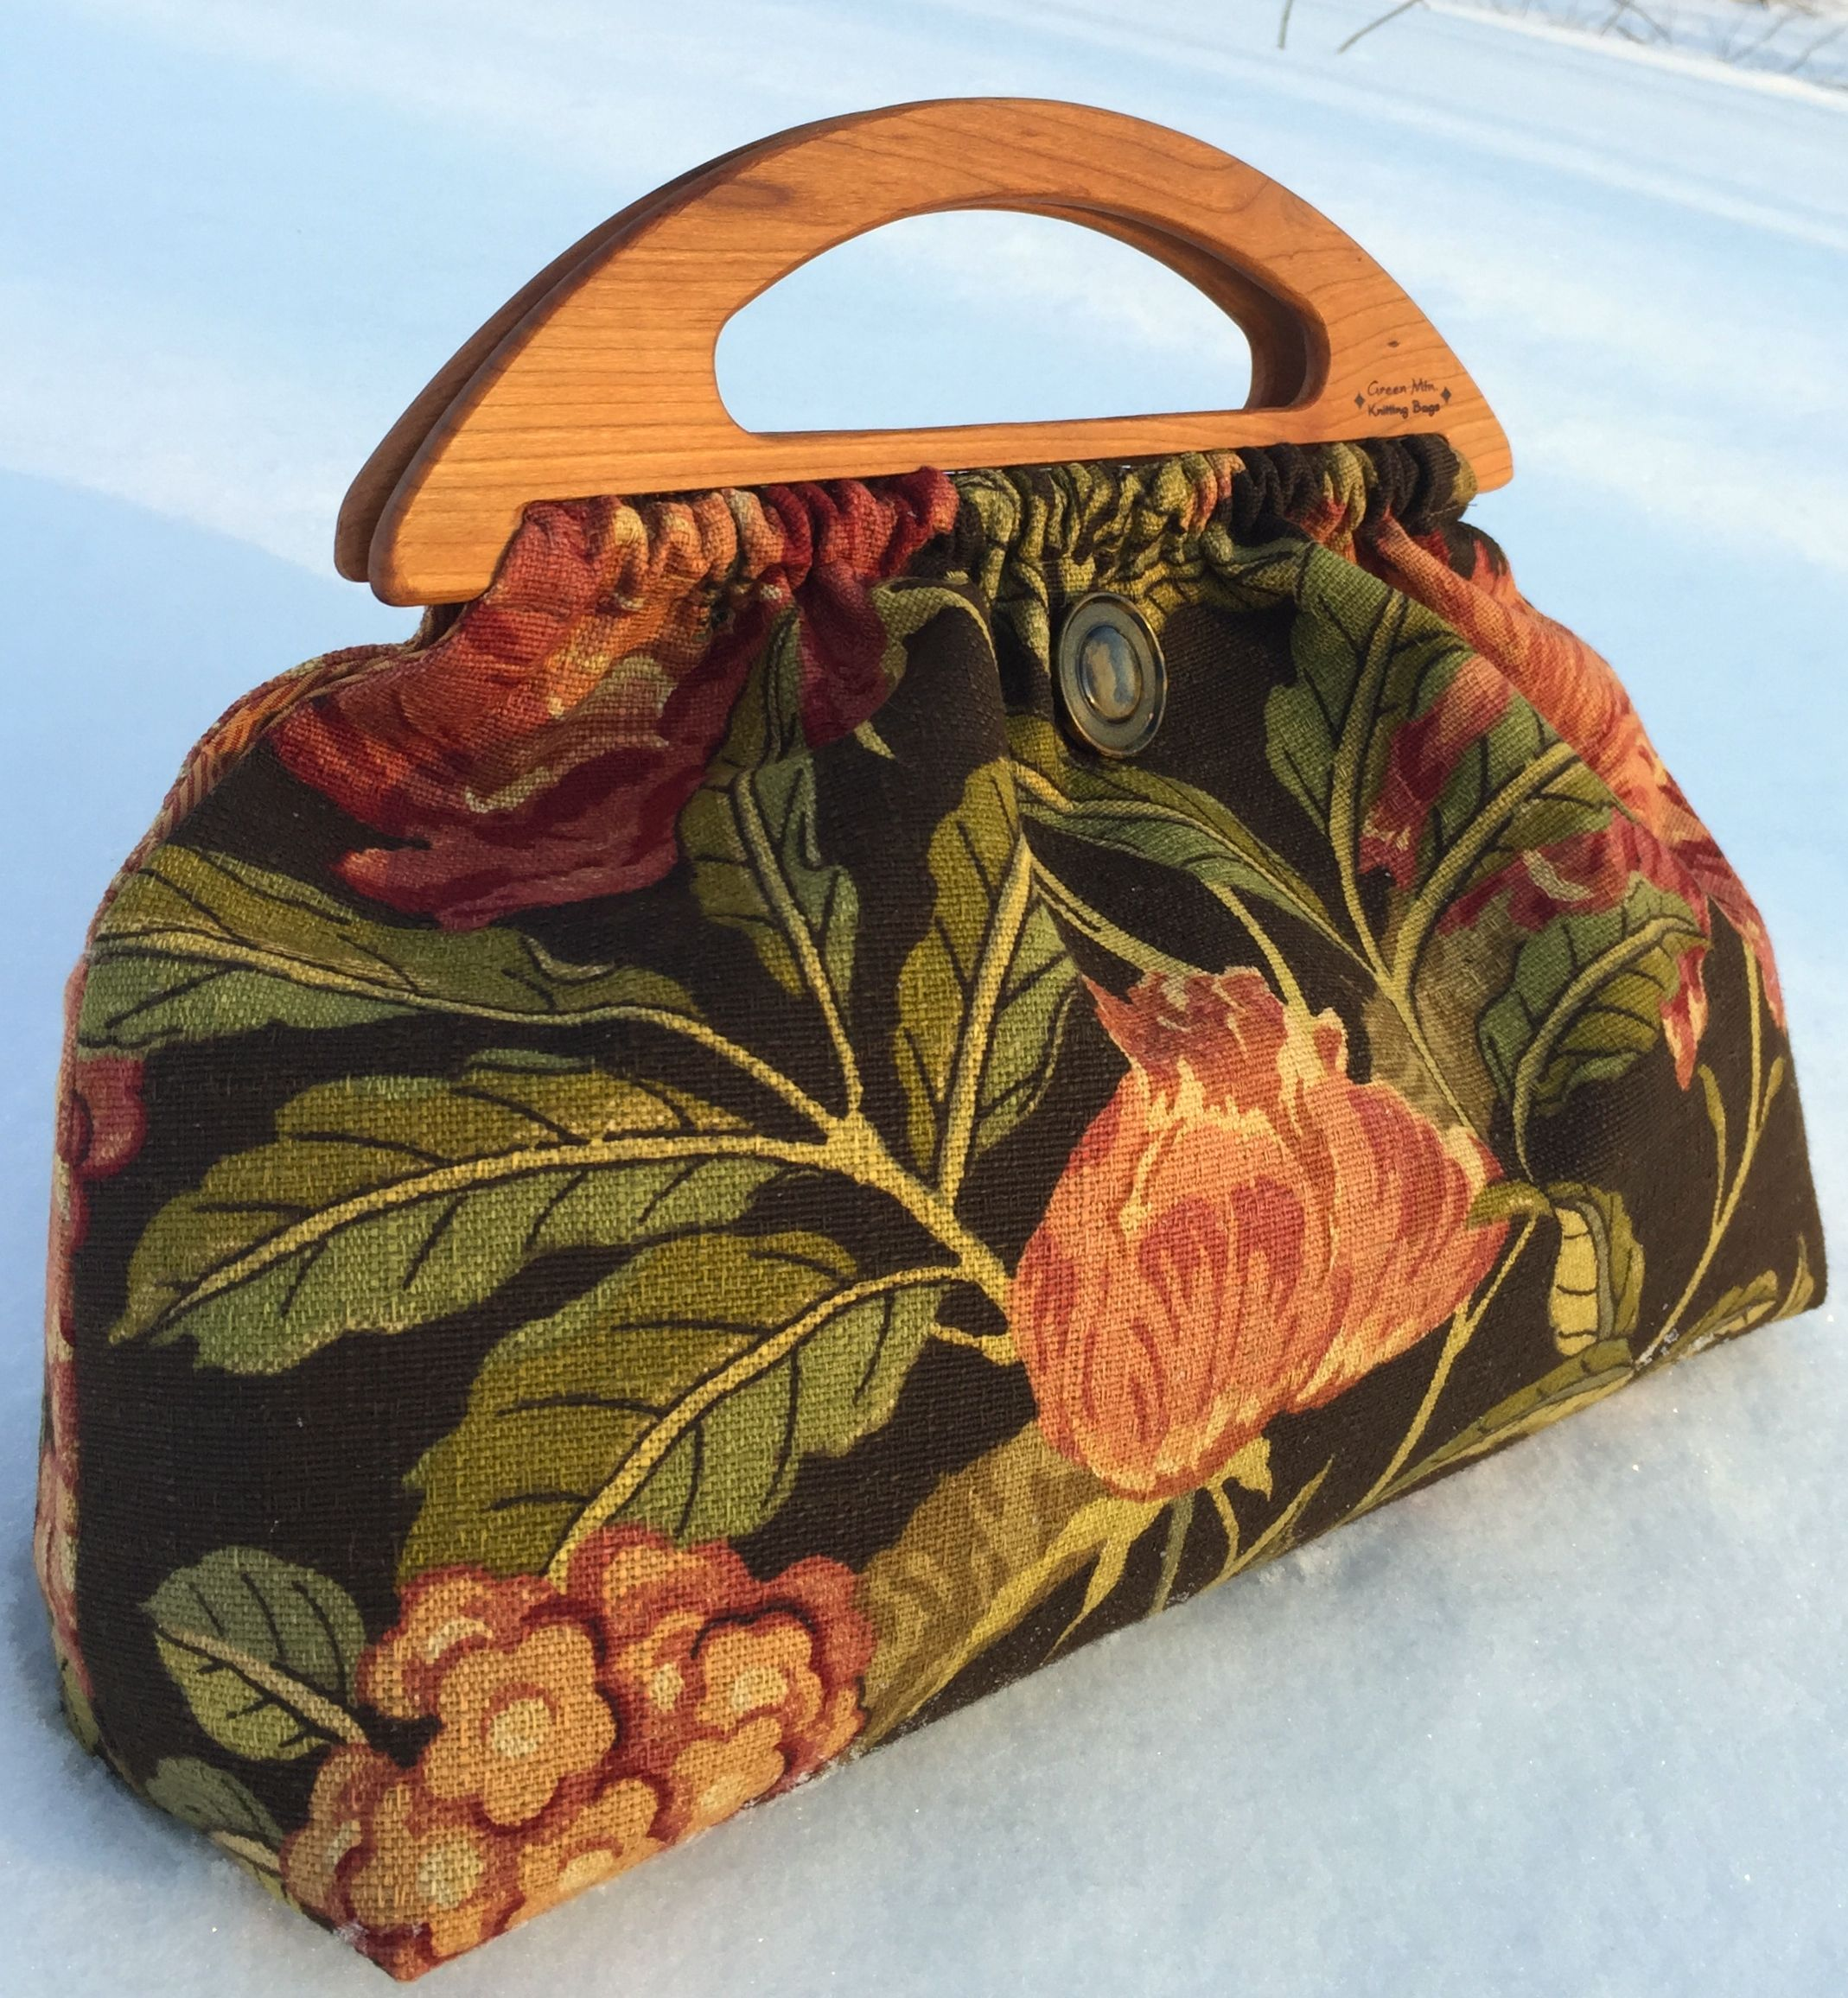 Bag On Snow Knitted Bags Bags Sewing Bag